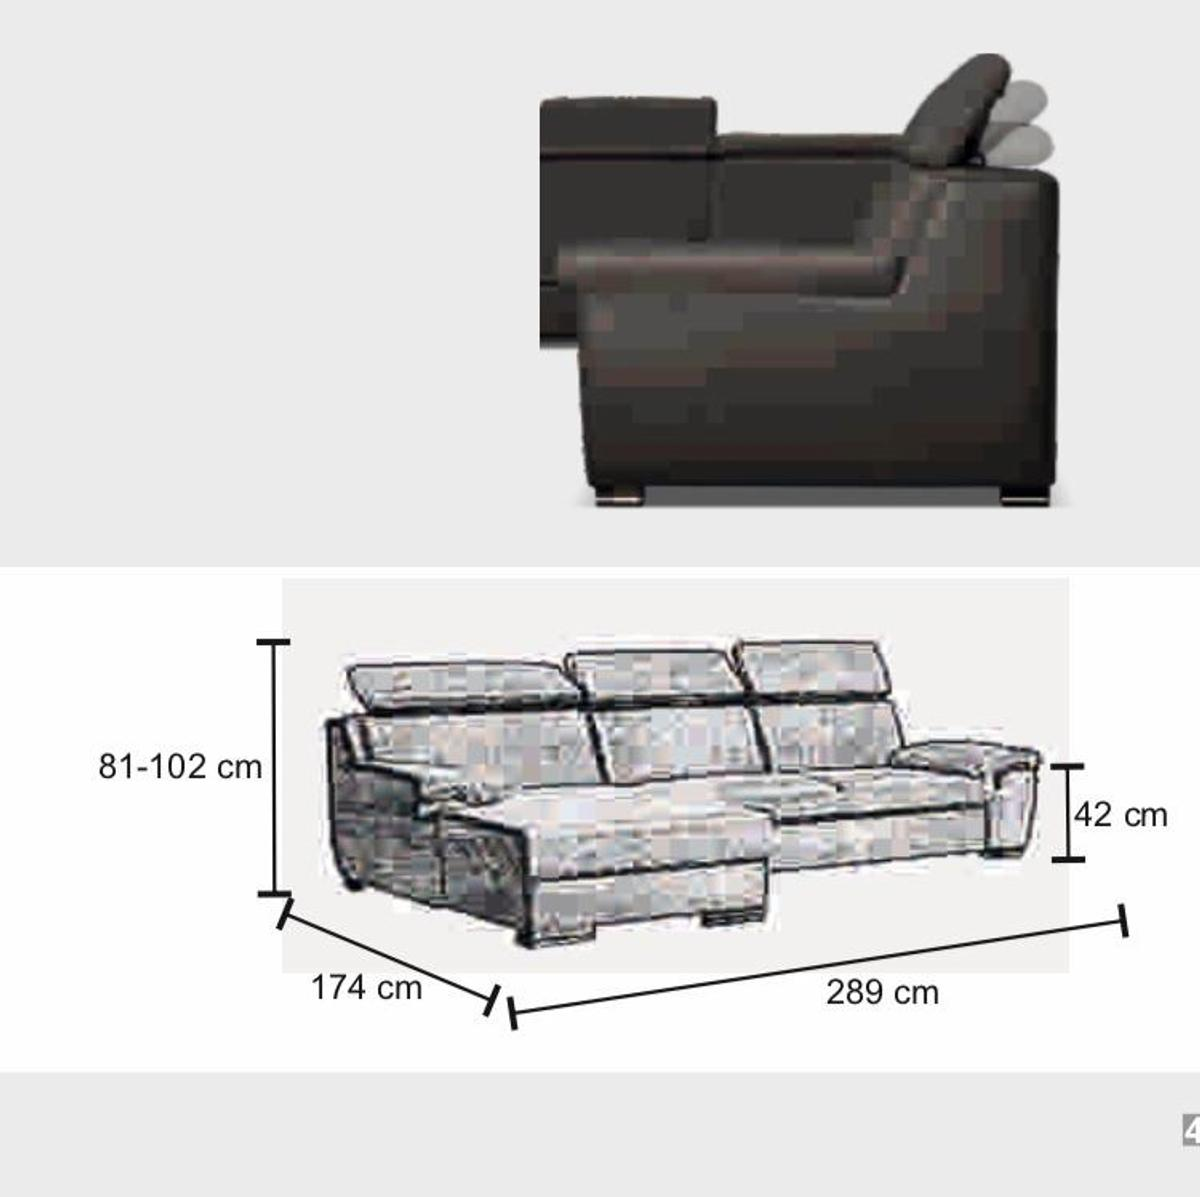 - Stylish DELUXE Folding Sofa Bed Order Now In E1 0AE London Für 469